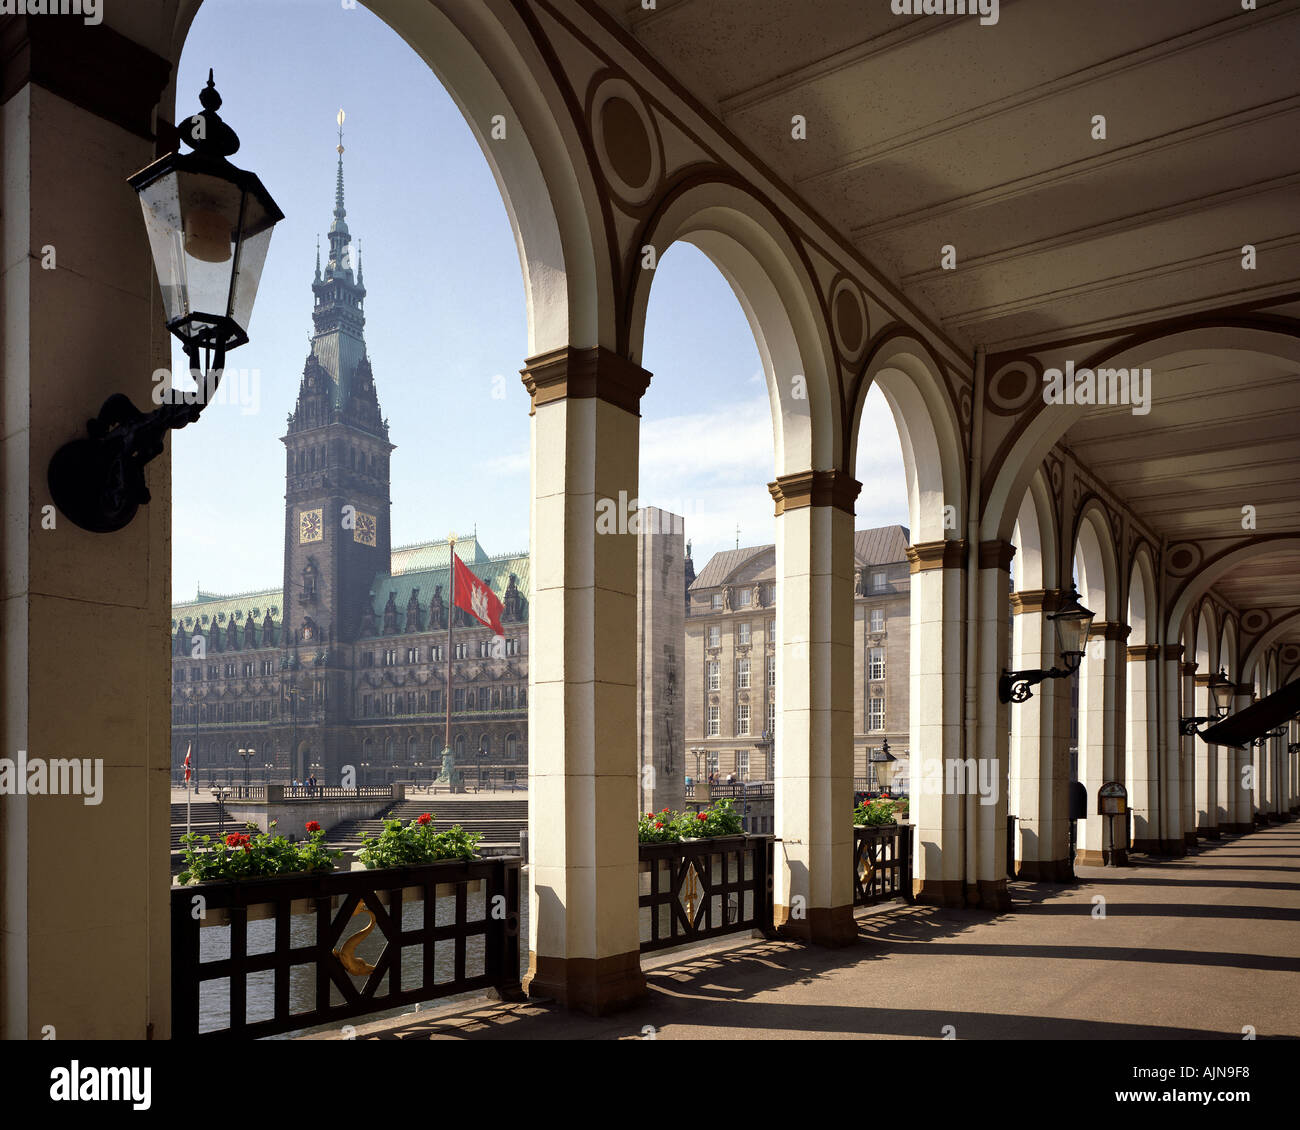 DE - HAMBURG: The Alsterarkaden with view towards City Hall Stock Photo